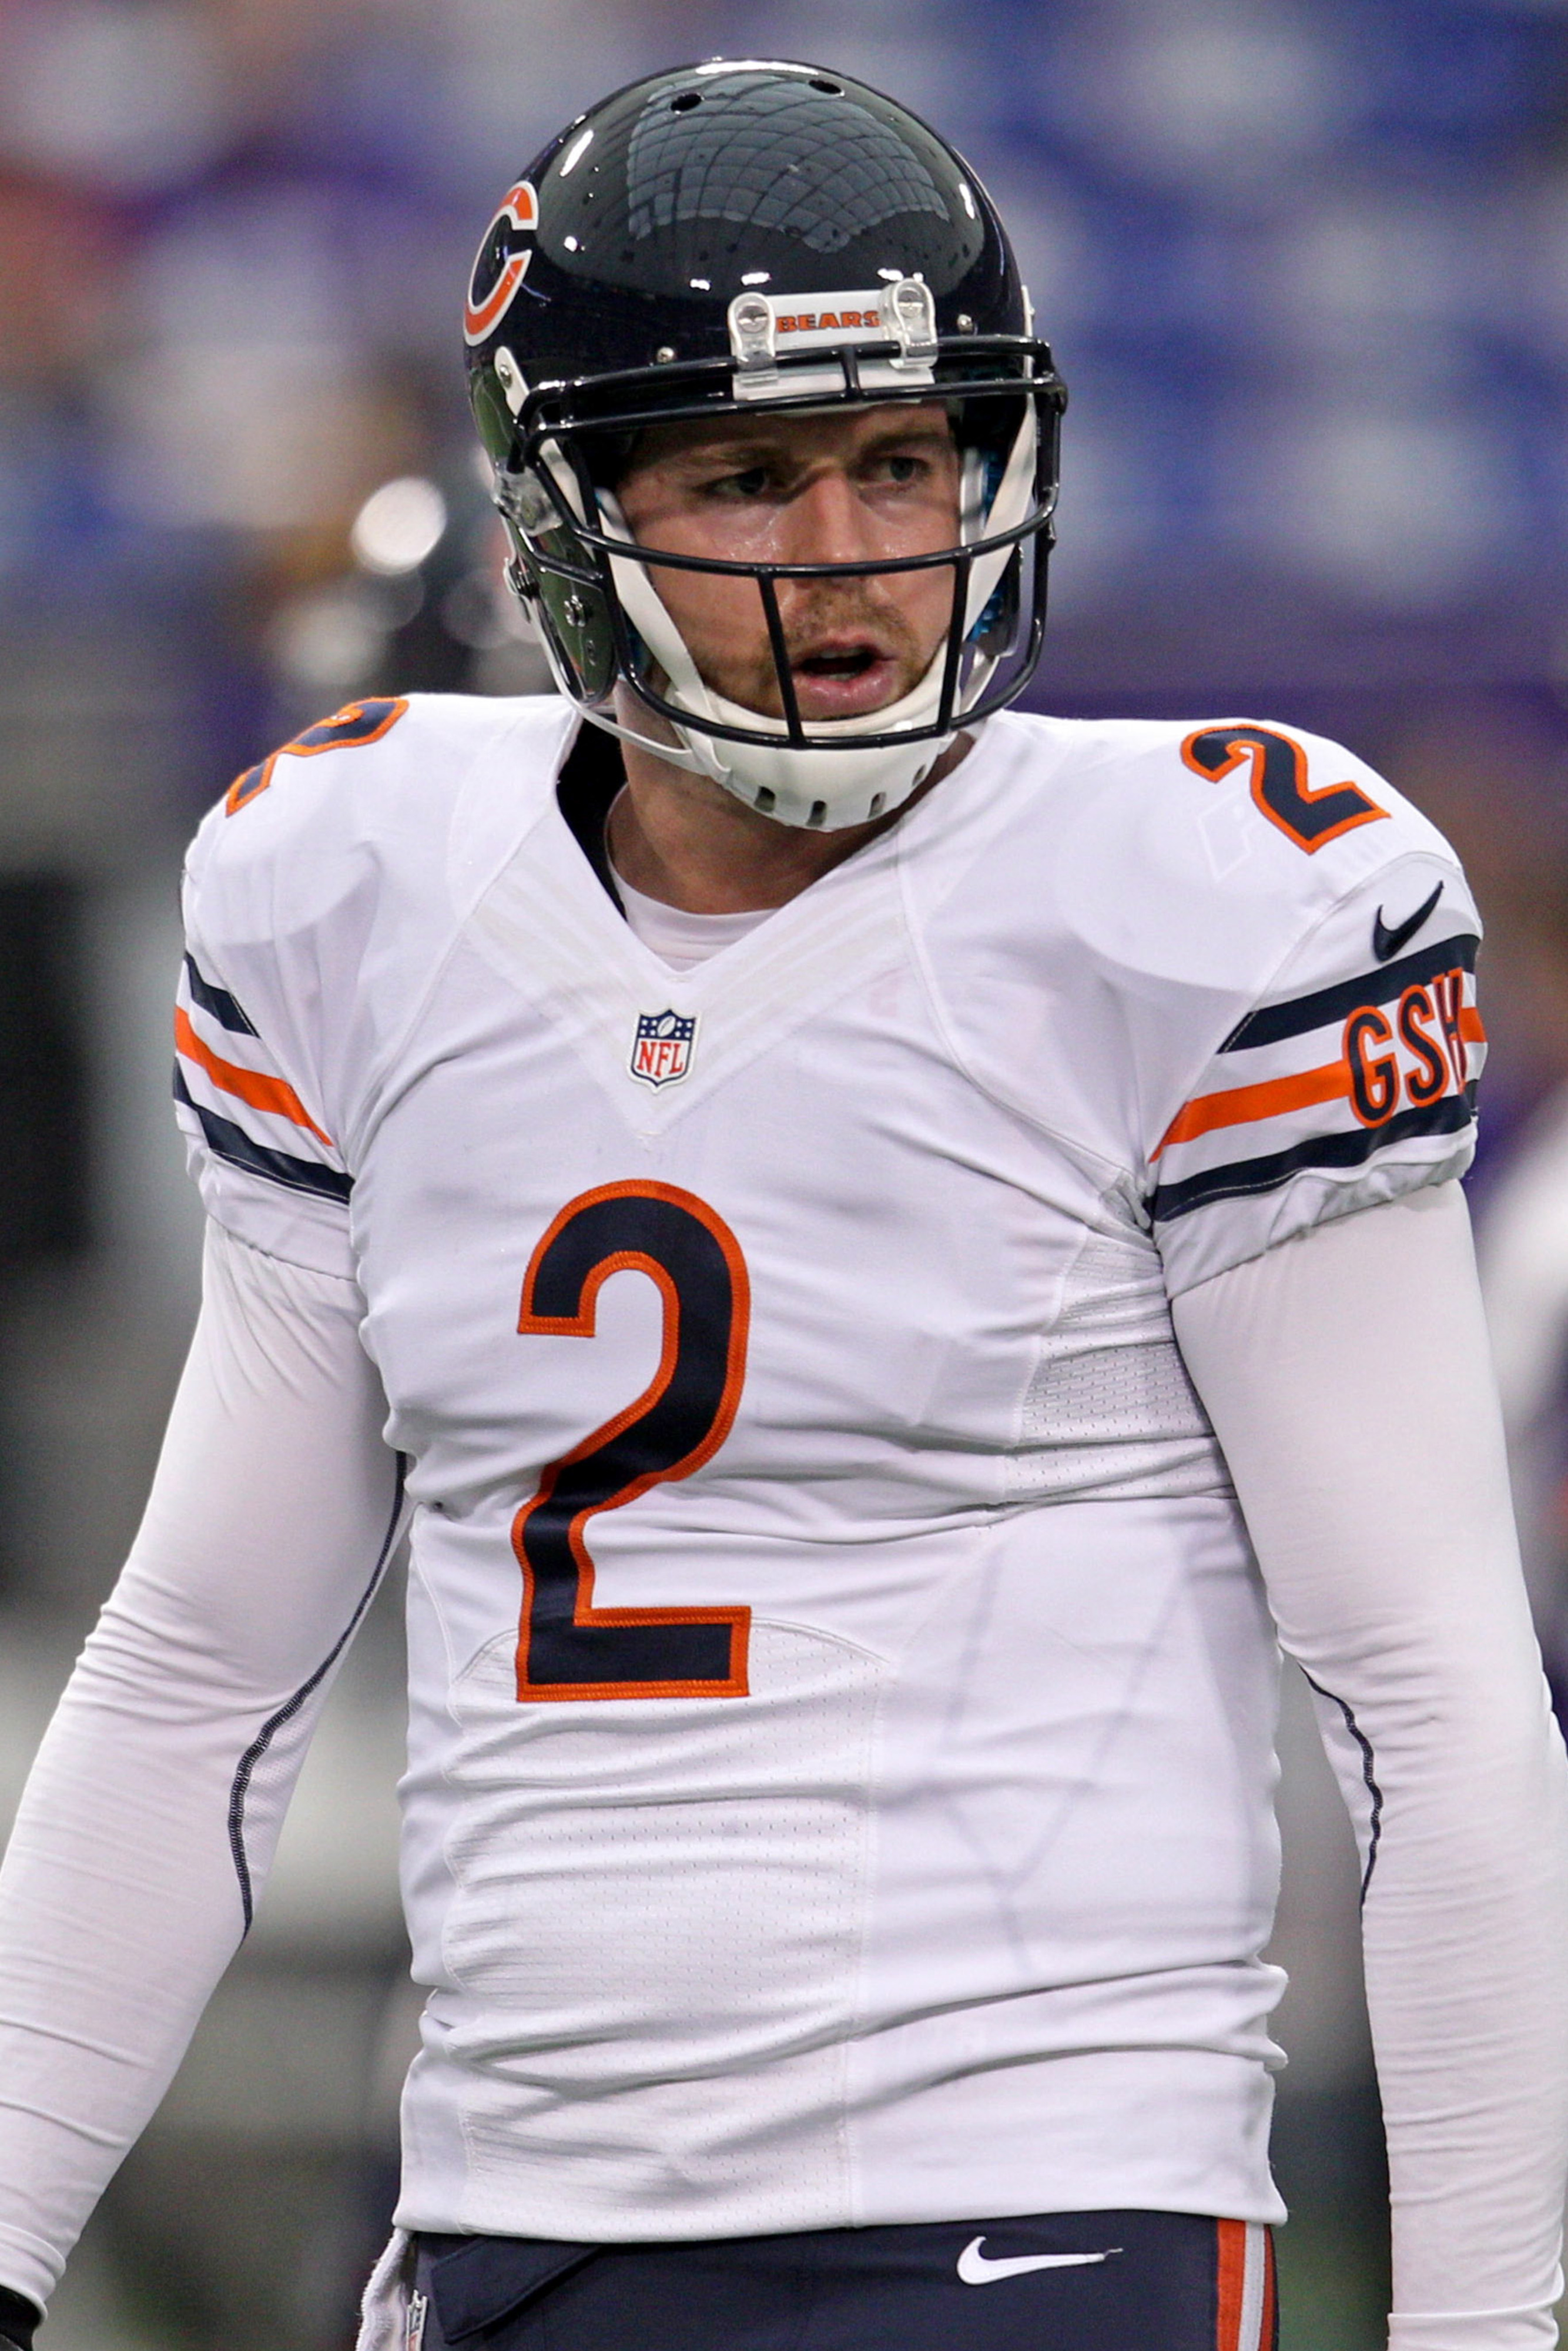 Carson playing for the Bears?